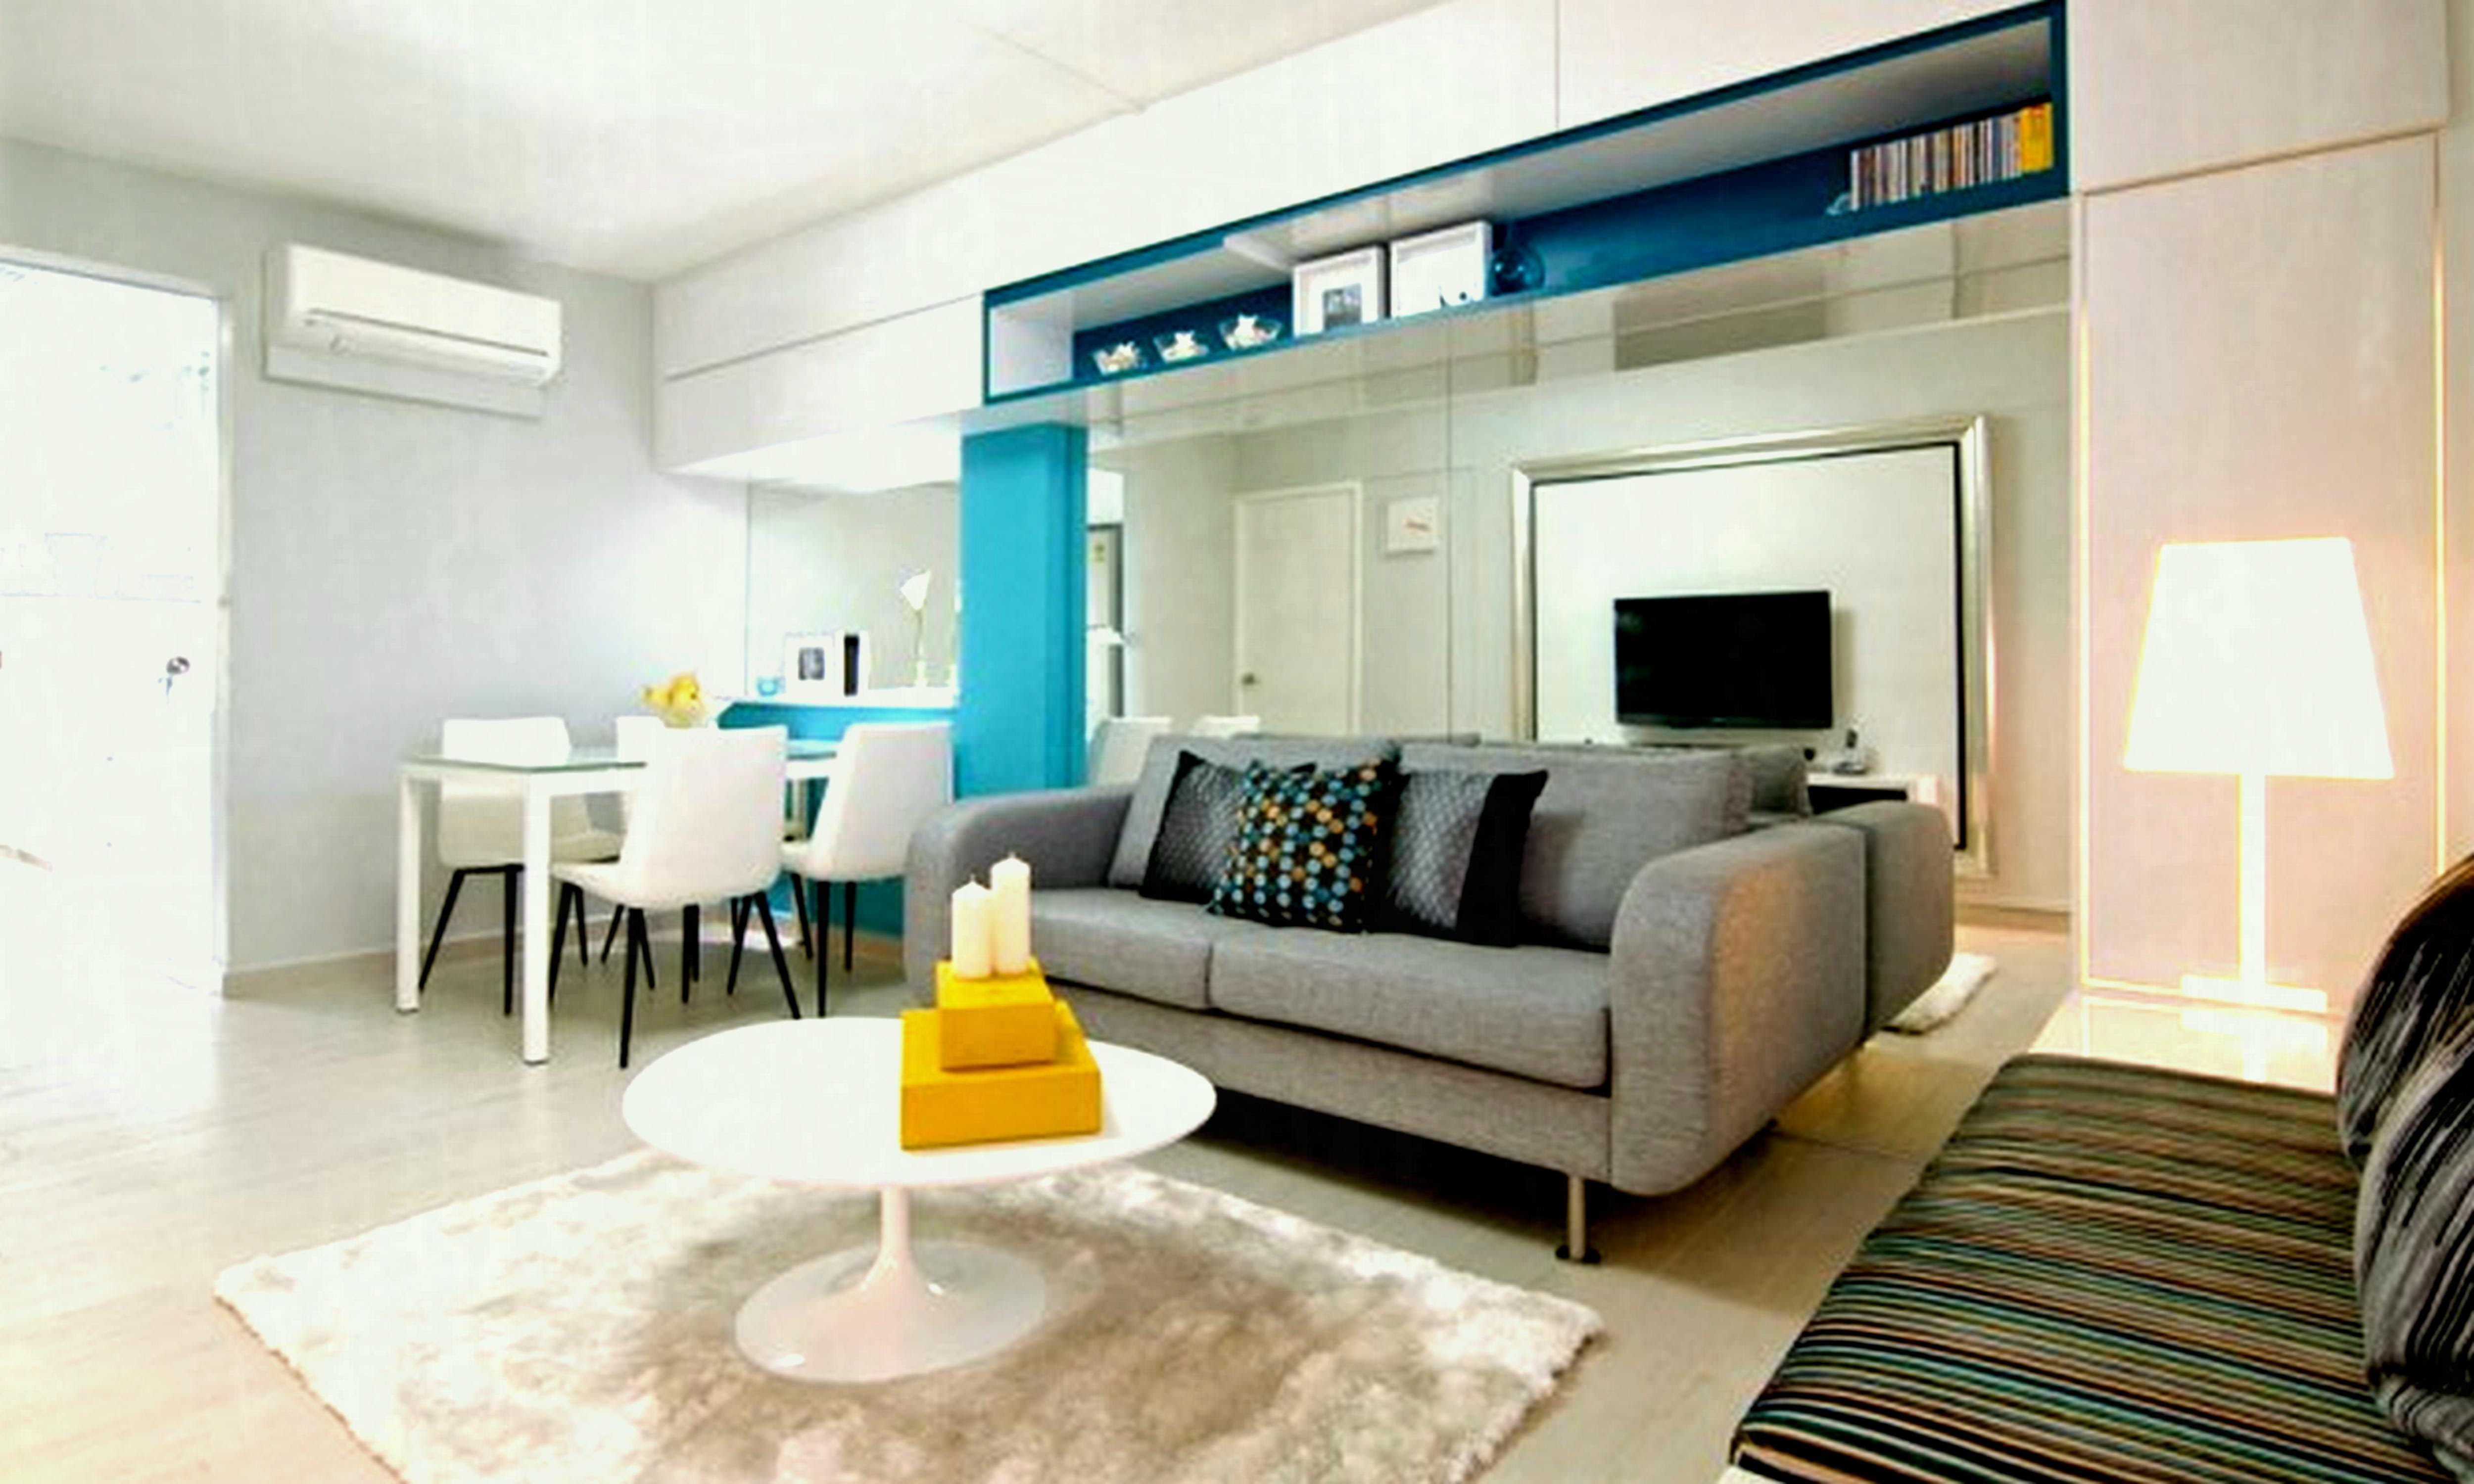 Small Bedroom Ideas Ikea Design 2 Youth Cozy For Couples Very Decorating On A Budget Closet Apppie Org